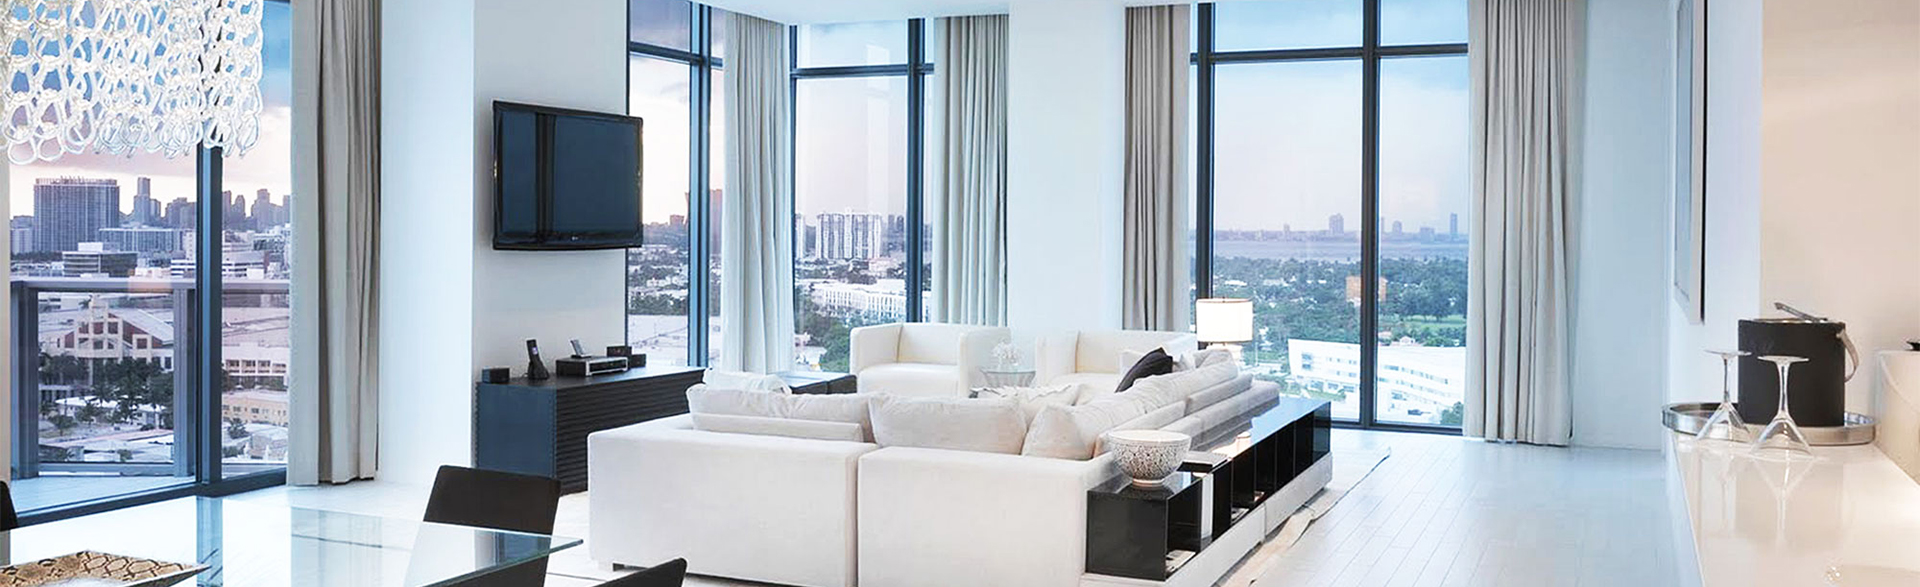 South Florida Homes   Condos For Rent. Homes and Condos For Rent in South Florida